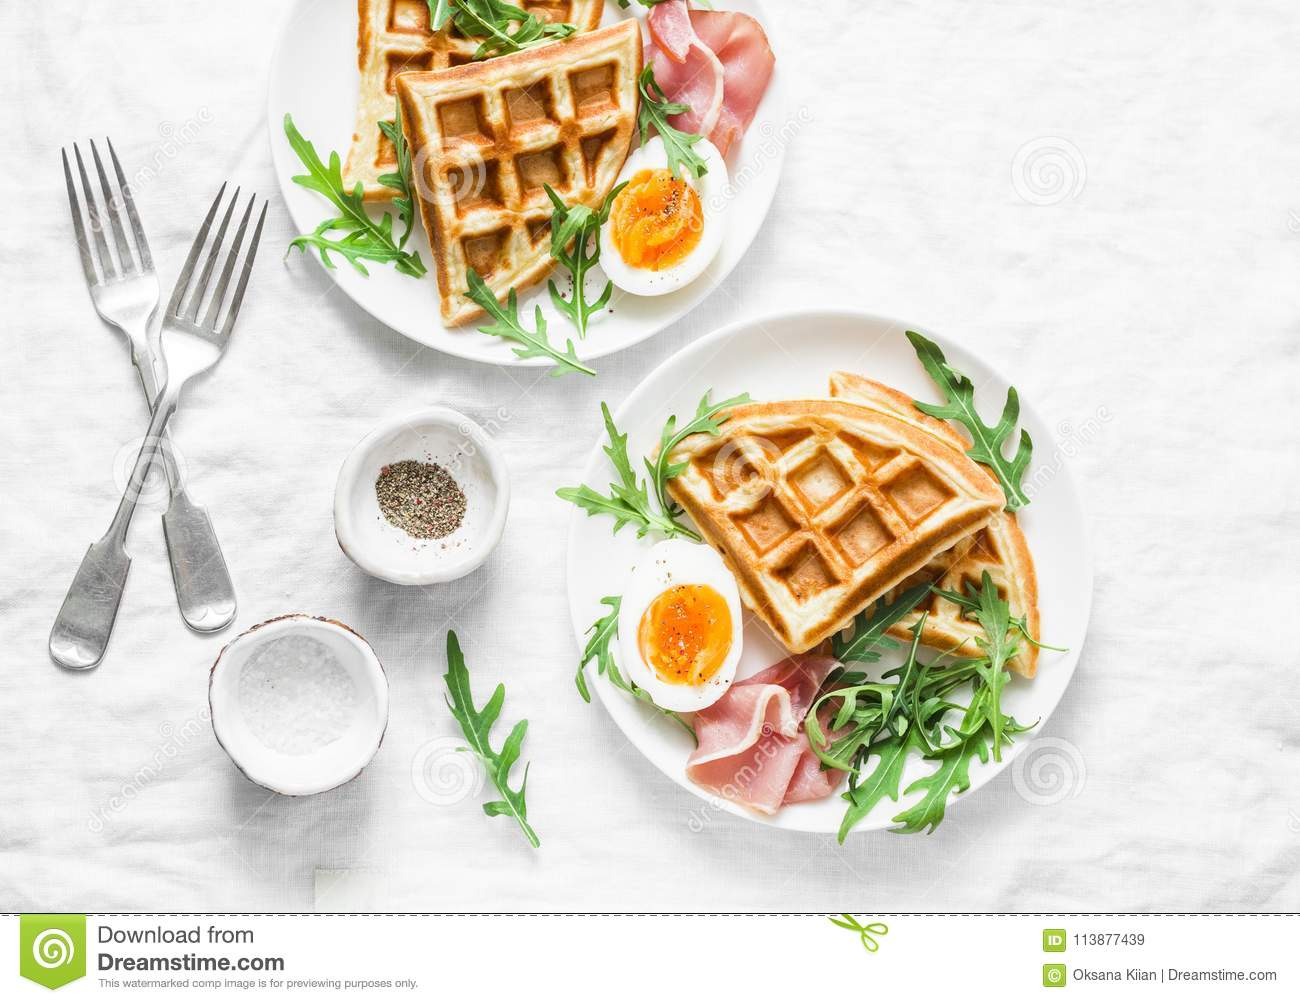 Served breakfast with potatoes savory waffles, boiled egg, ham and arugula on light background, top view. Appetizers, snack, brunc